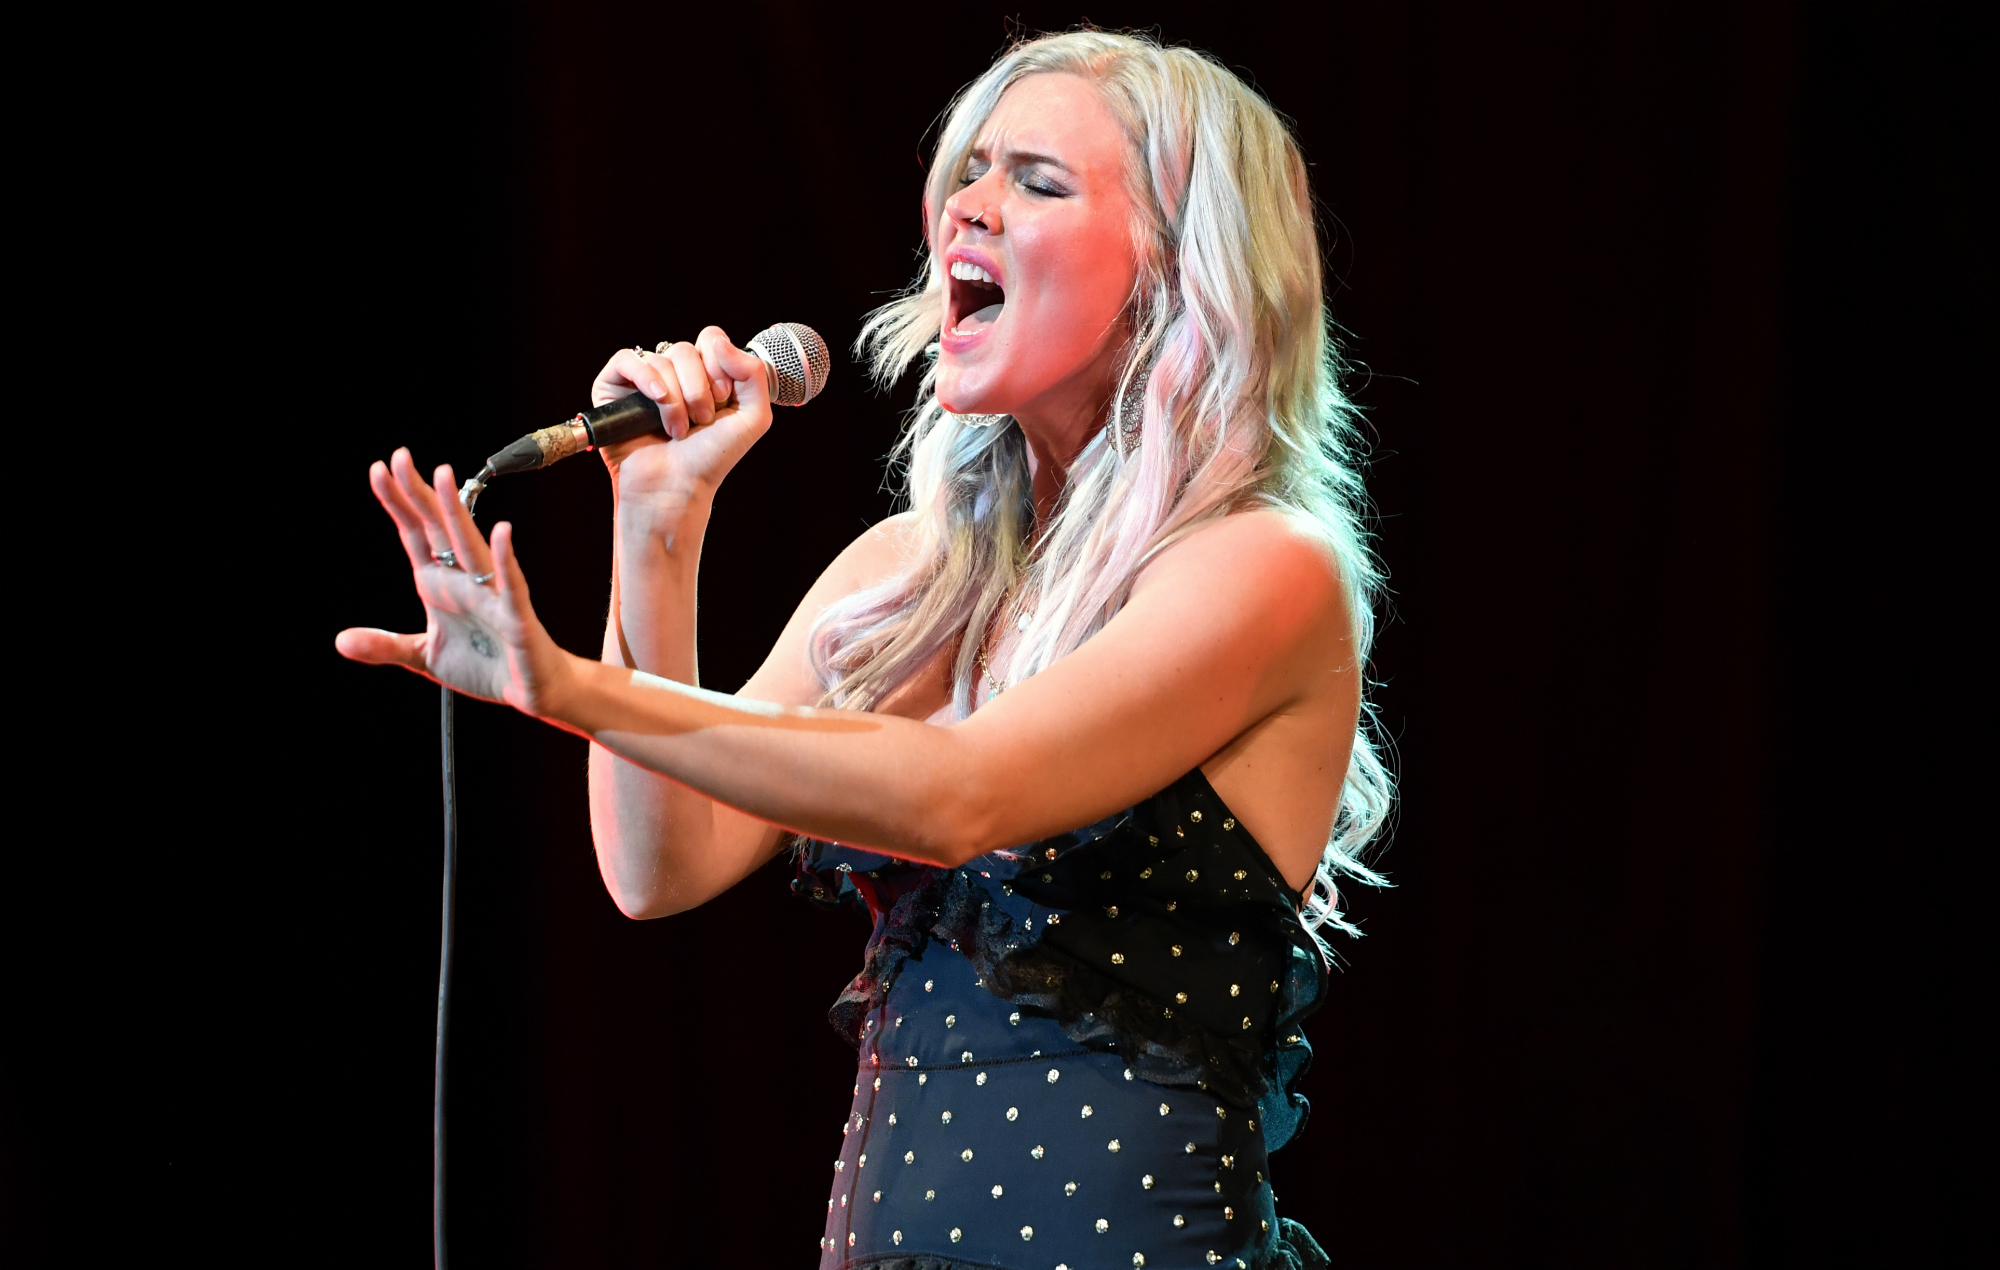 Joss stone no one likes her she dont care